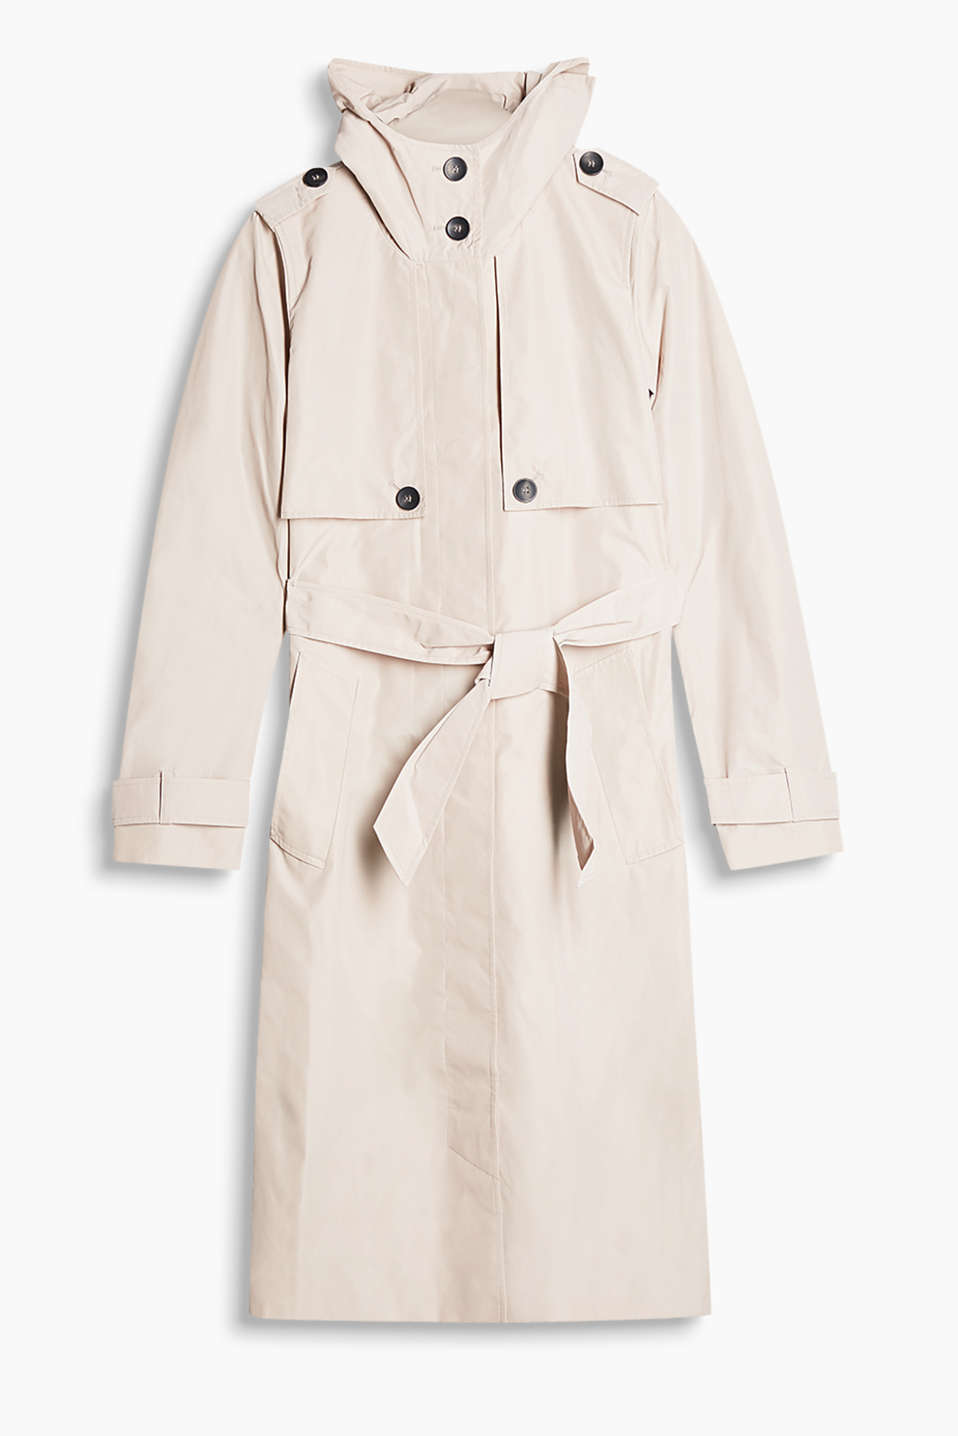 A piece ifor all occasions: smart, cool trench cost in waterproof nylon outer material